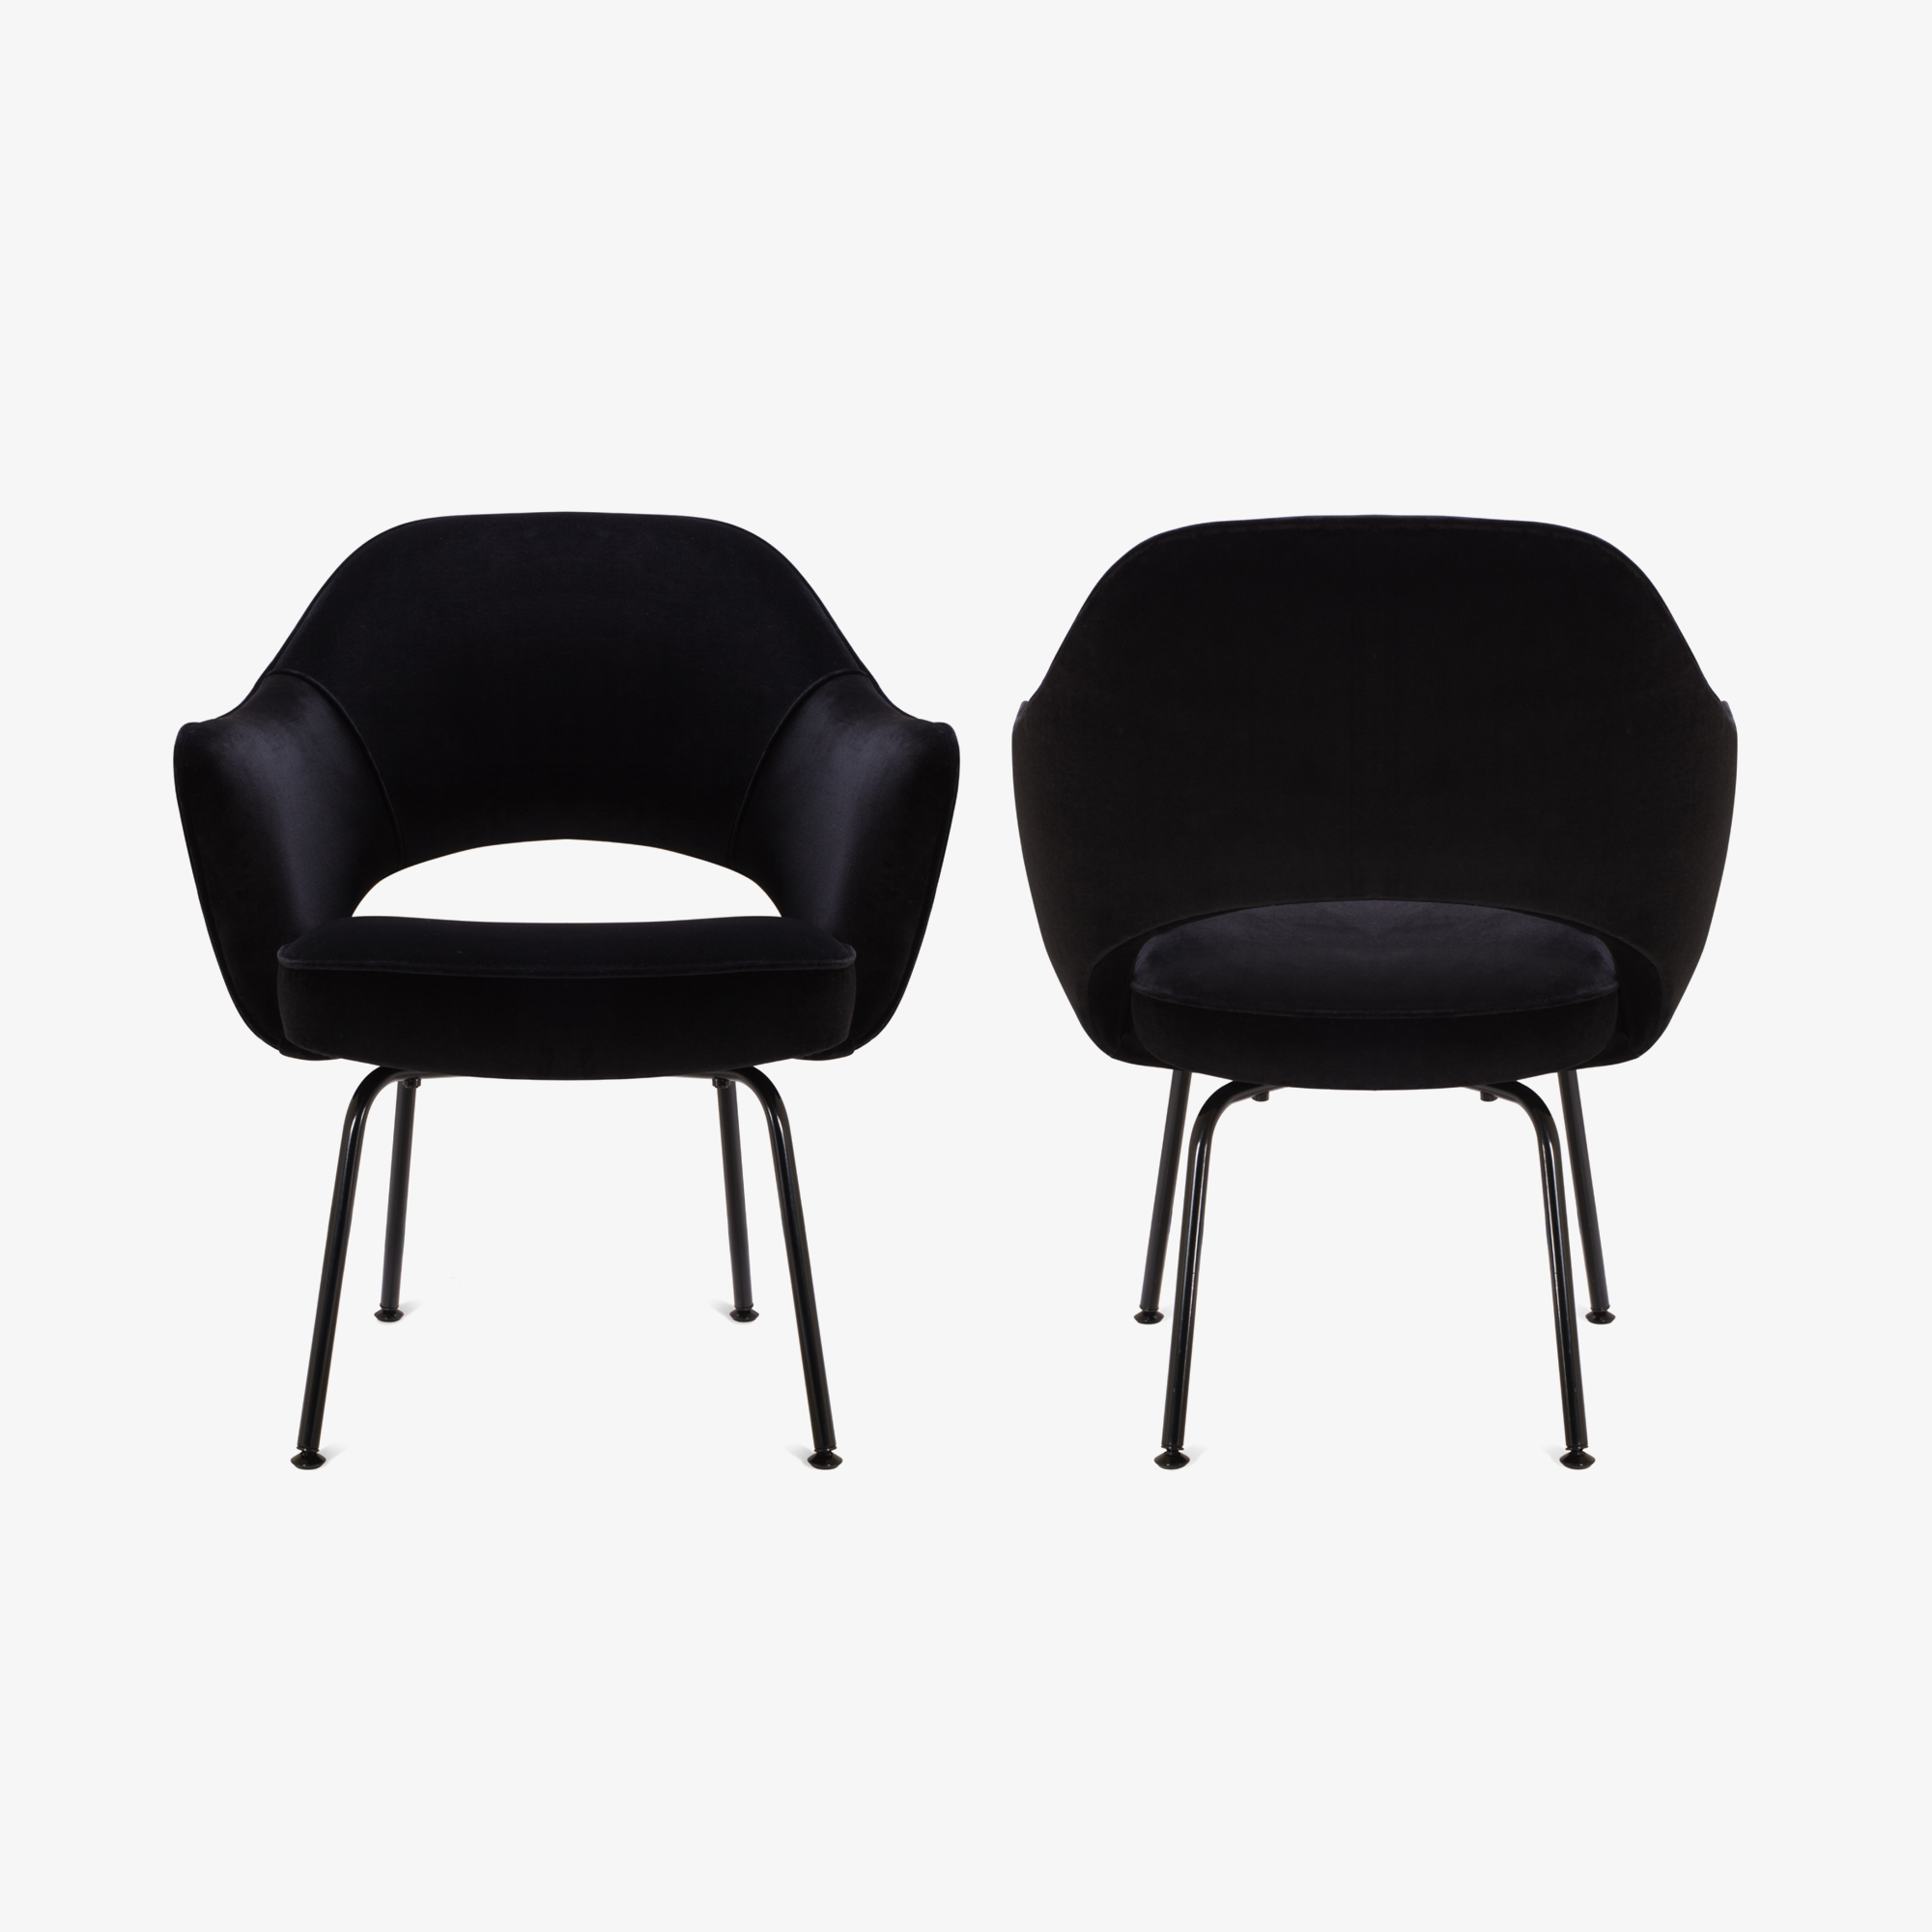 Knoll Saarinen Executive Arm Chair, Black Edition